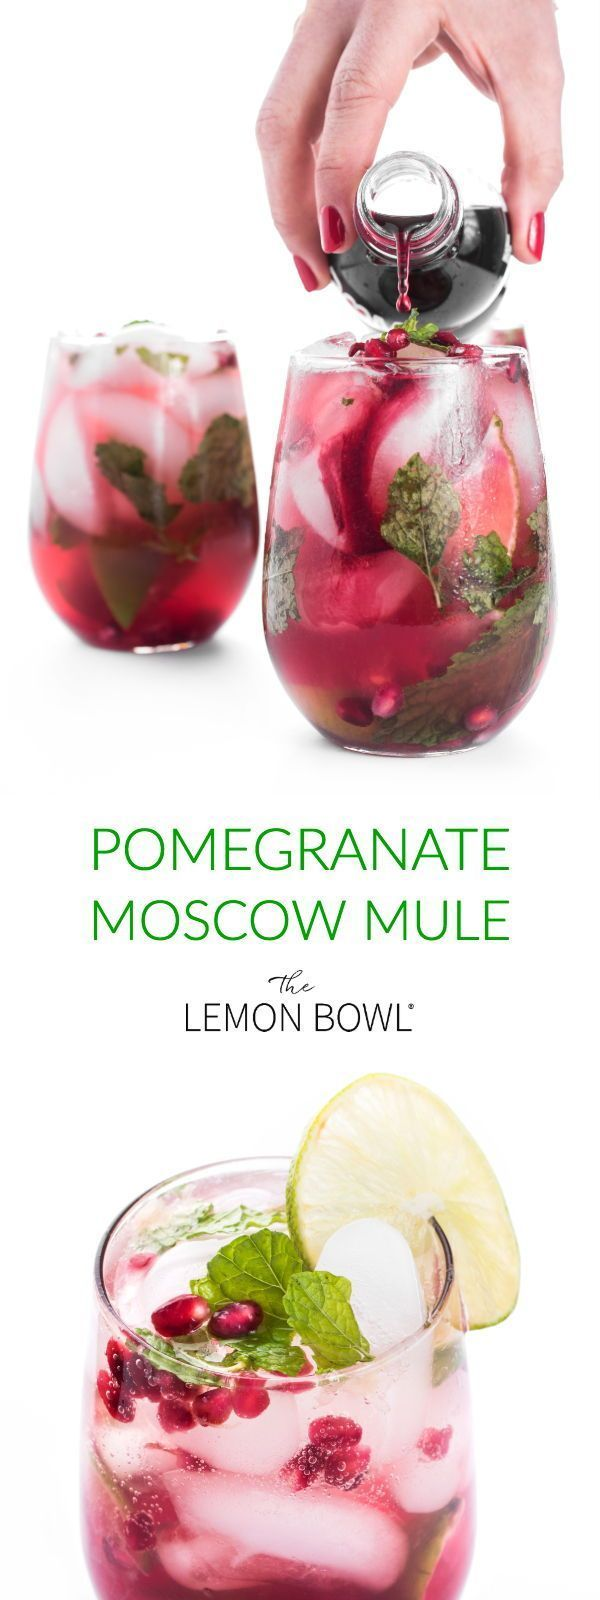 Pomegranate Moscow Mule - The Lemon Bowl® #gincocktailrecipes